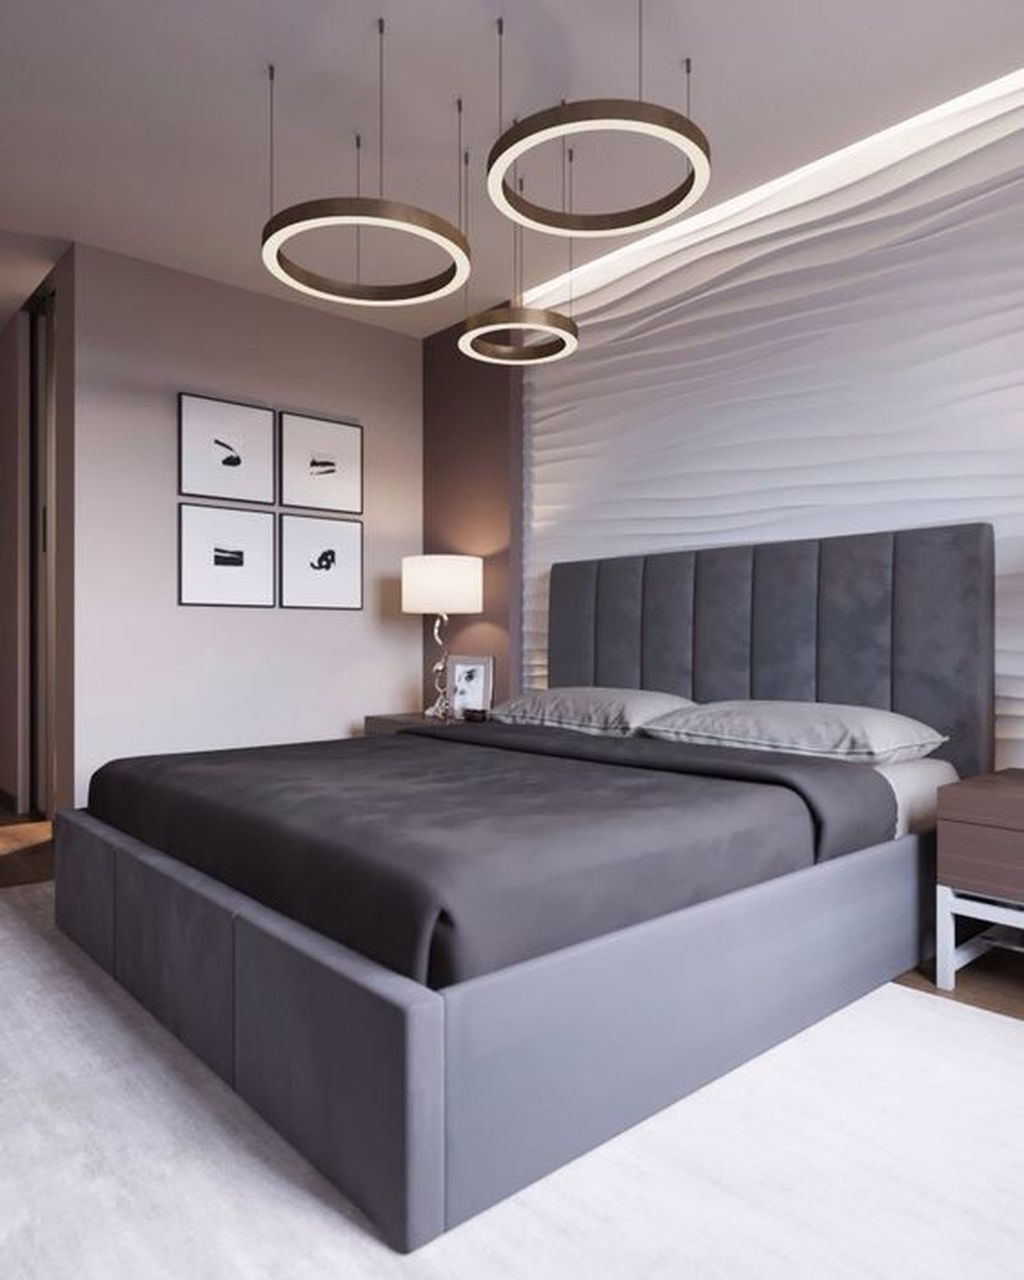 Cute Chandeliers Decoration Ideas For Your Bedroom12